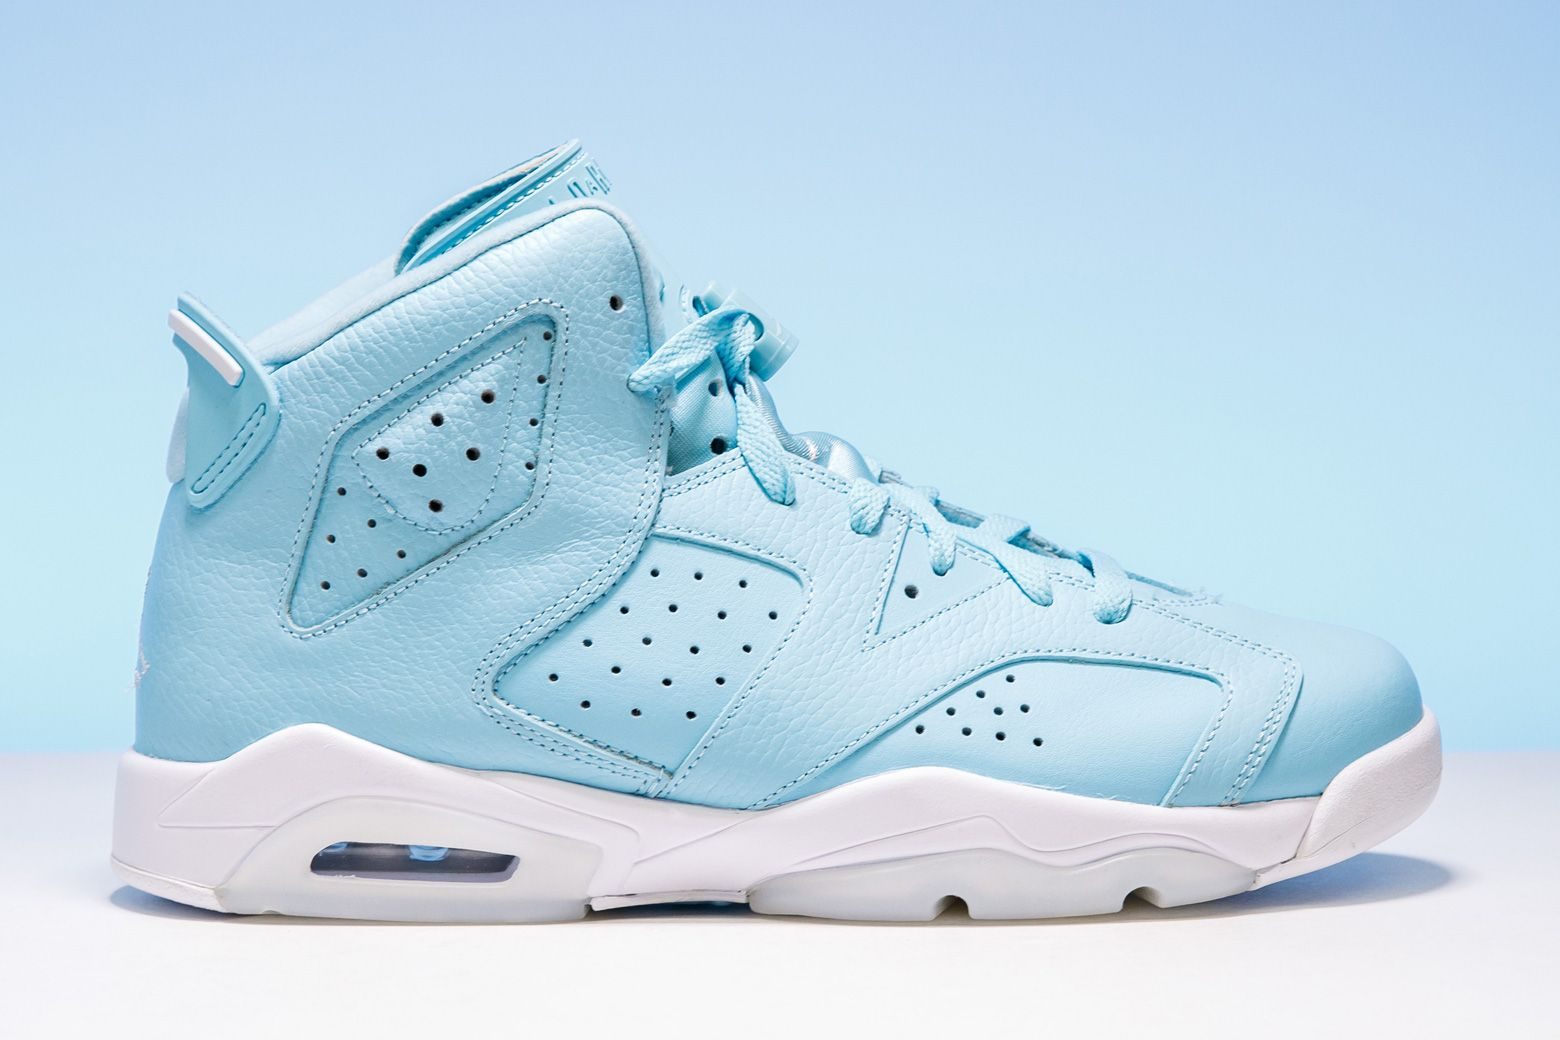 deb9f4c1b0e61c Air Jordan 6 Retro GG Still Blue White